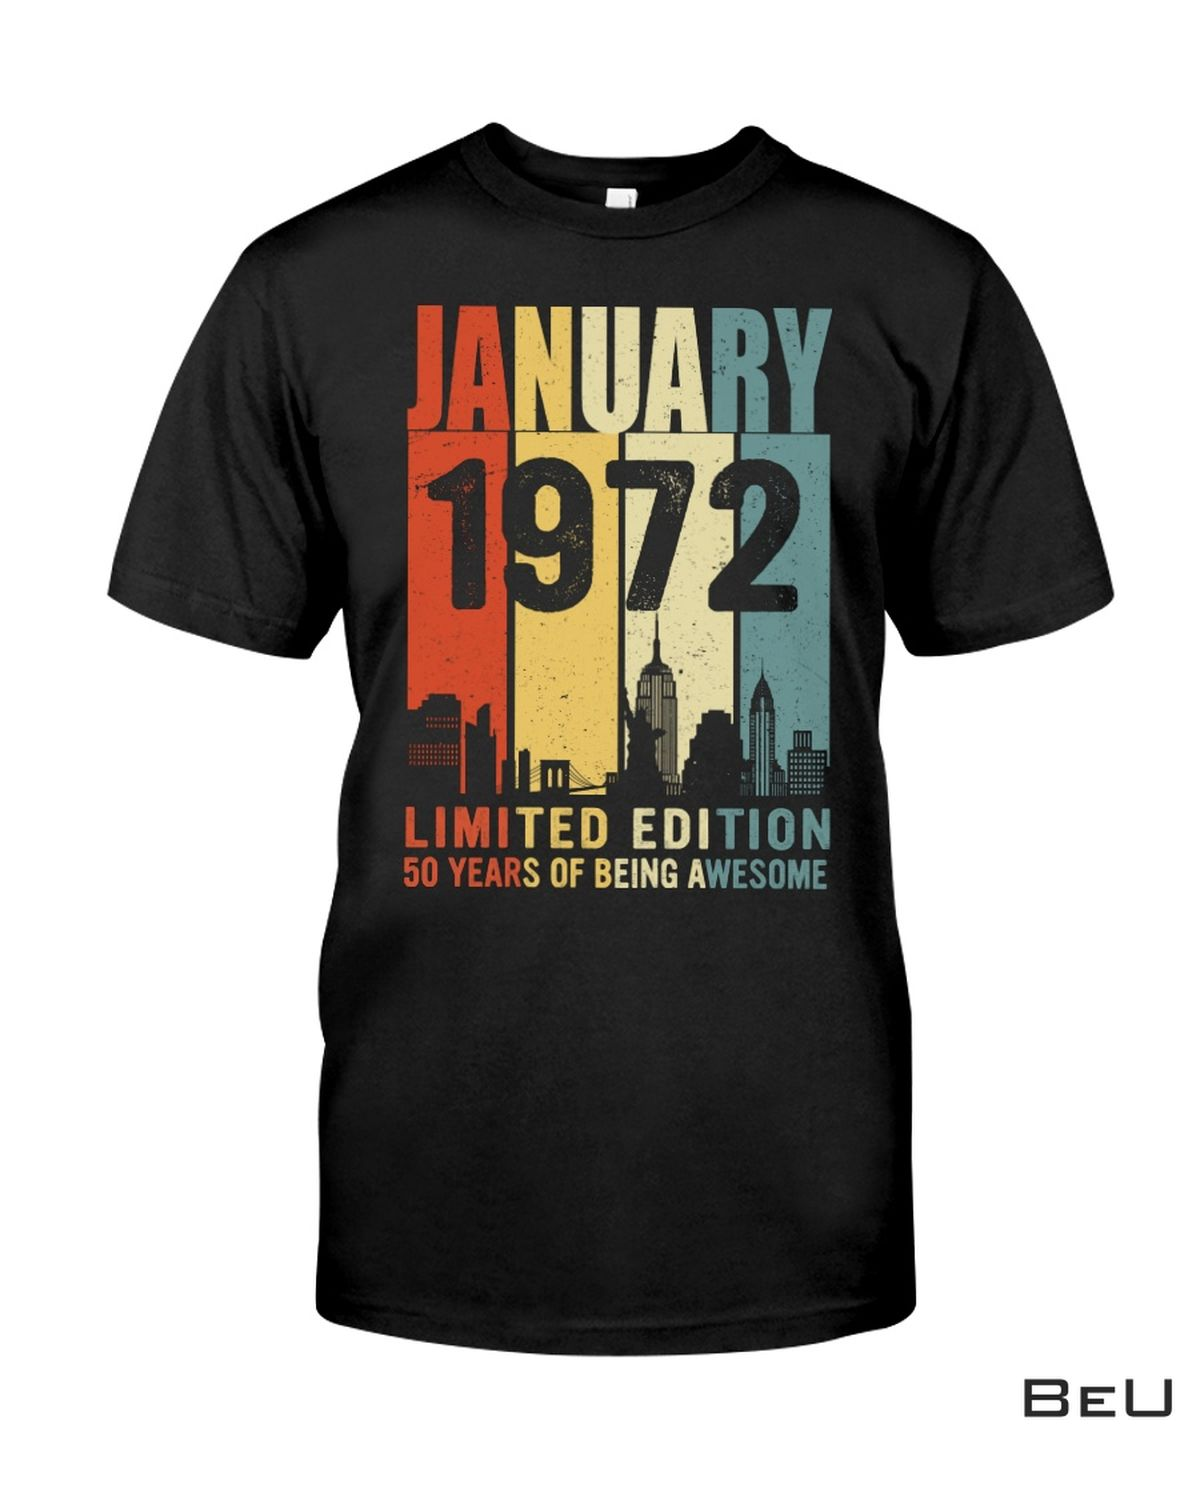 Amazing January 1972 Limited Edition 50 Years Of Being Awesome Shirt, hoodie